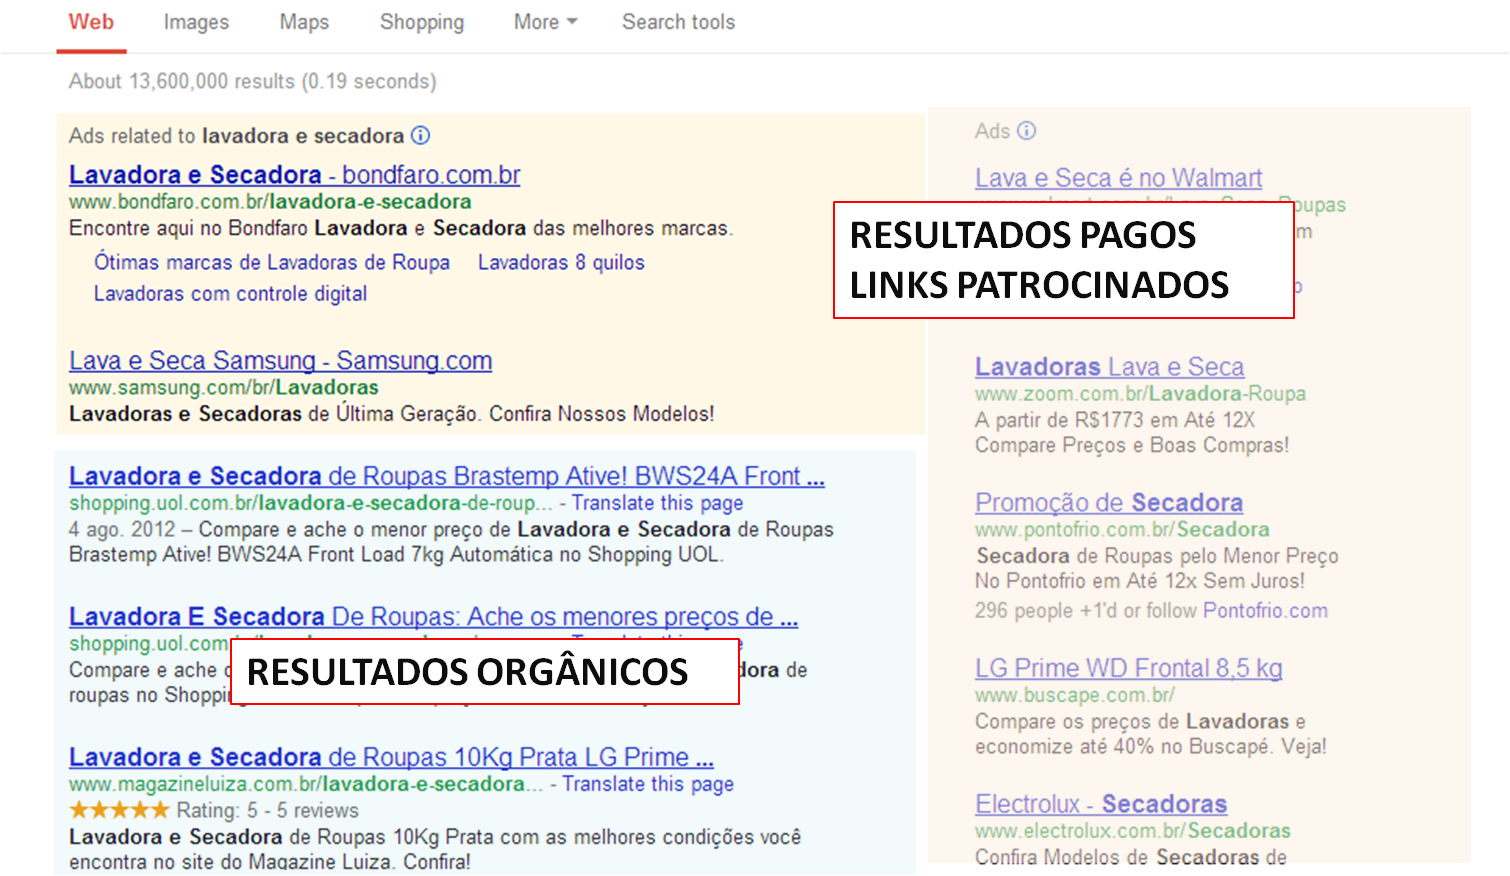 Links-Patrocinados-construsite-brasil-va